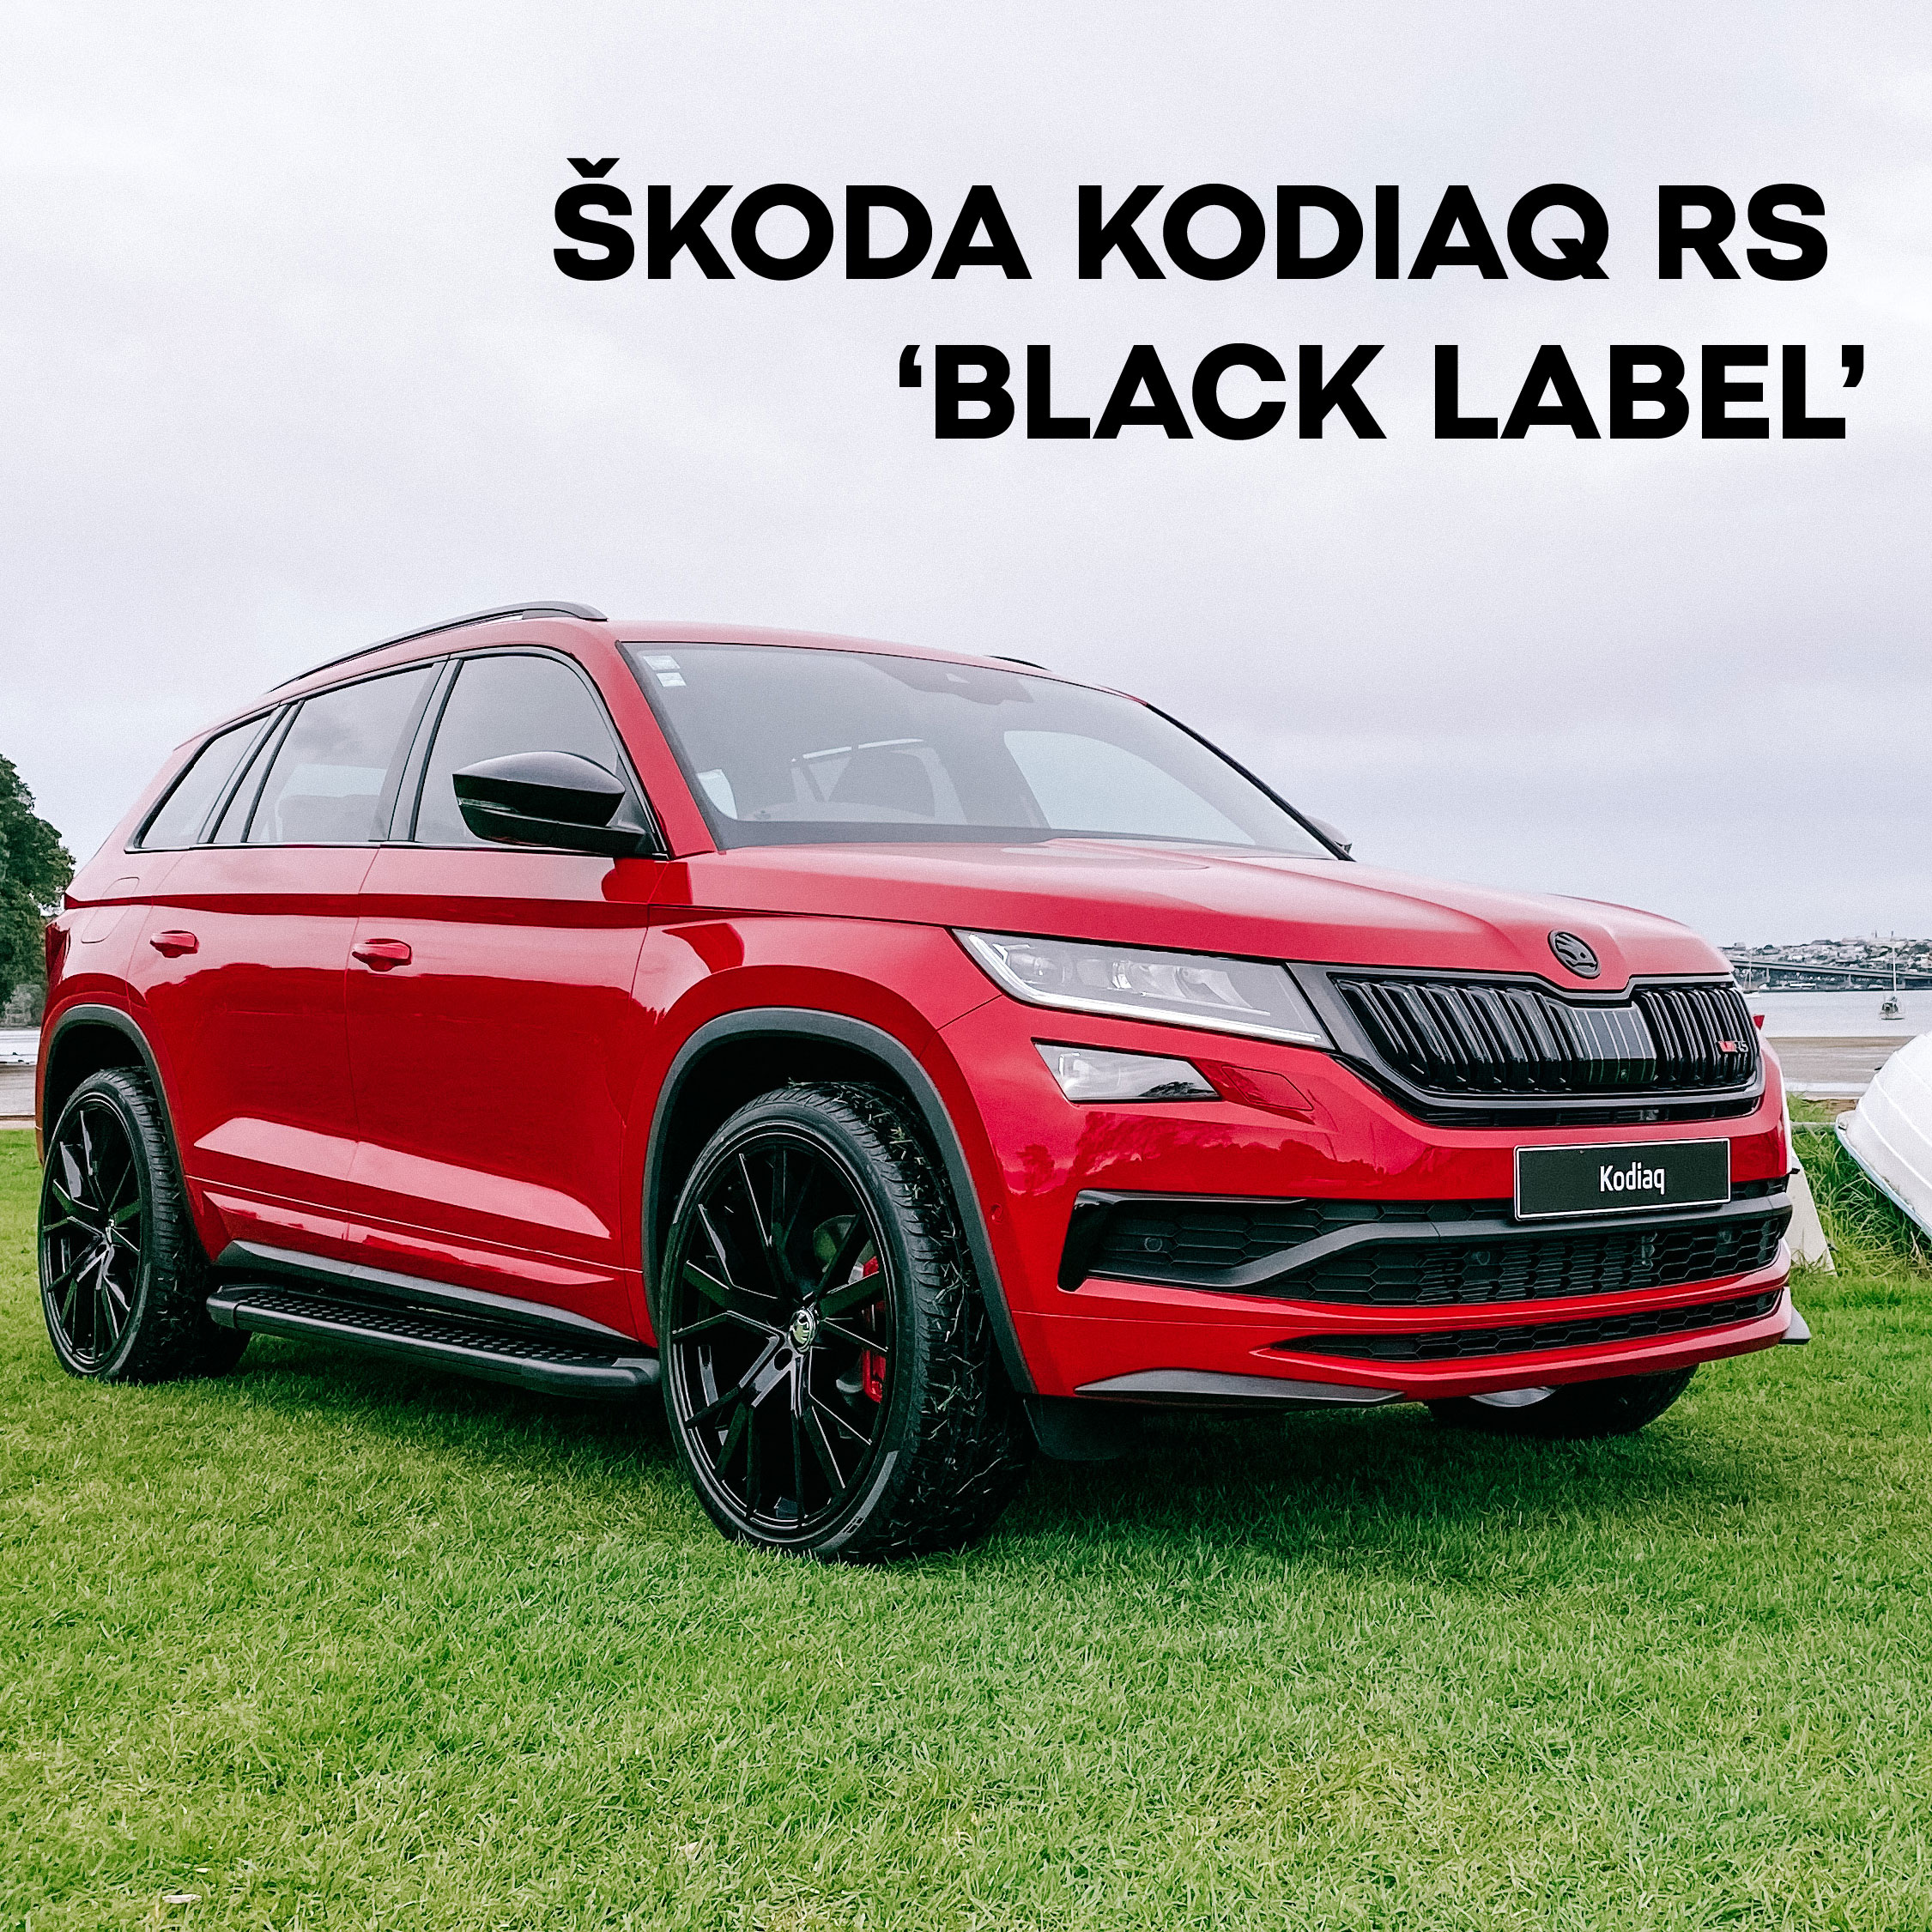 kodiaq-rs-black-label-banner-05